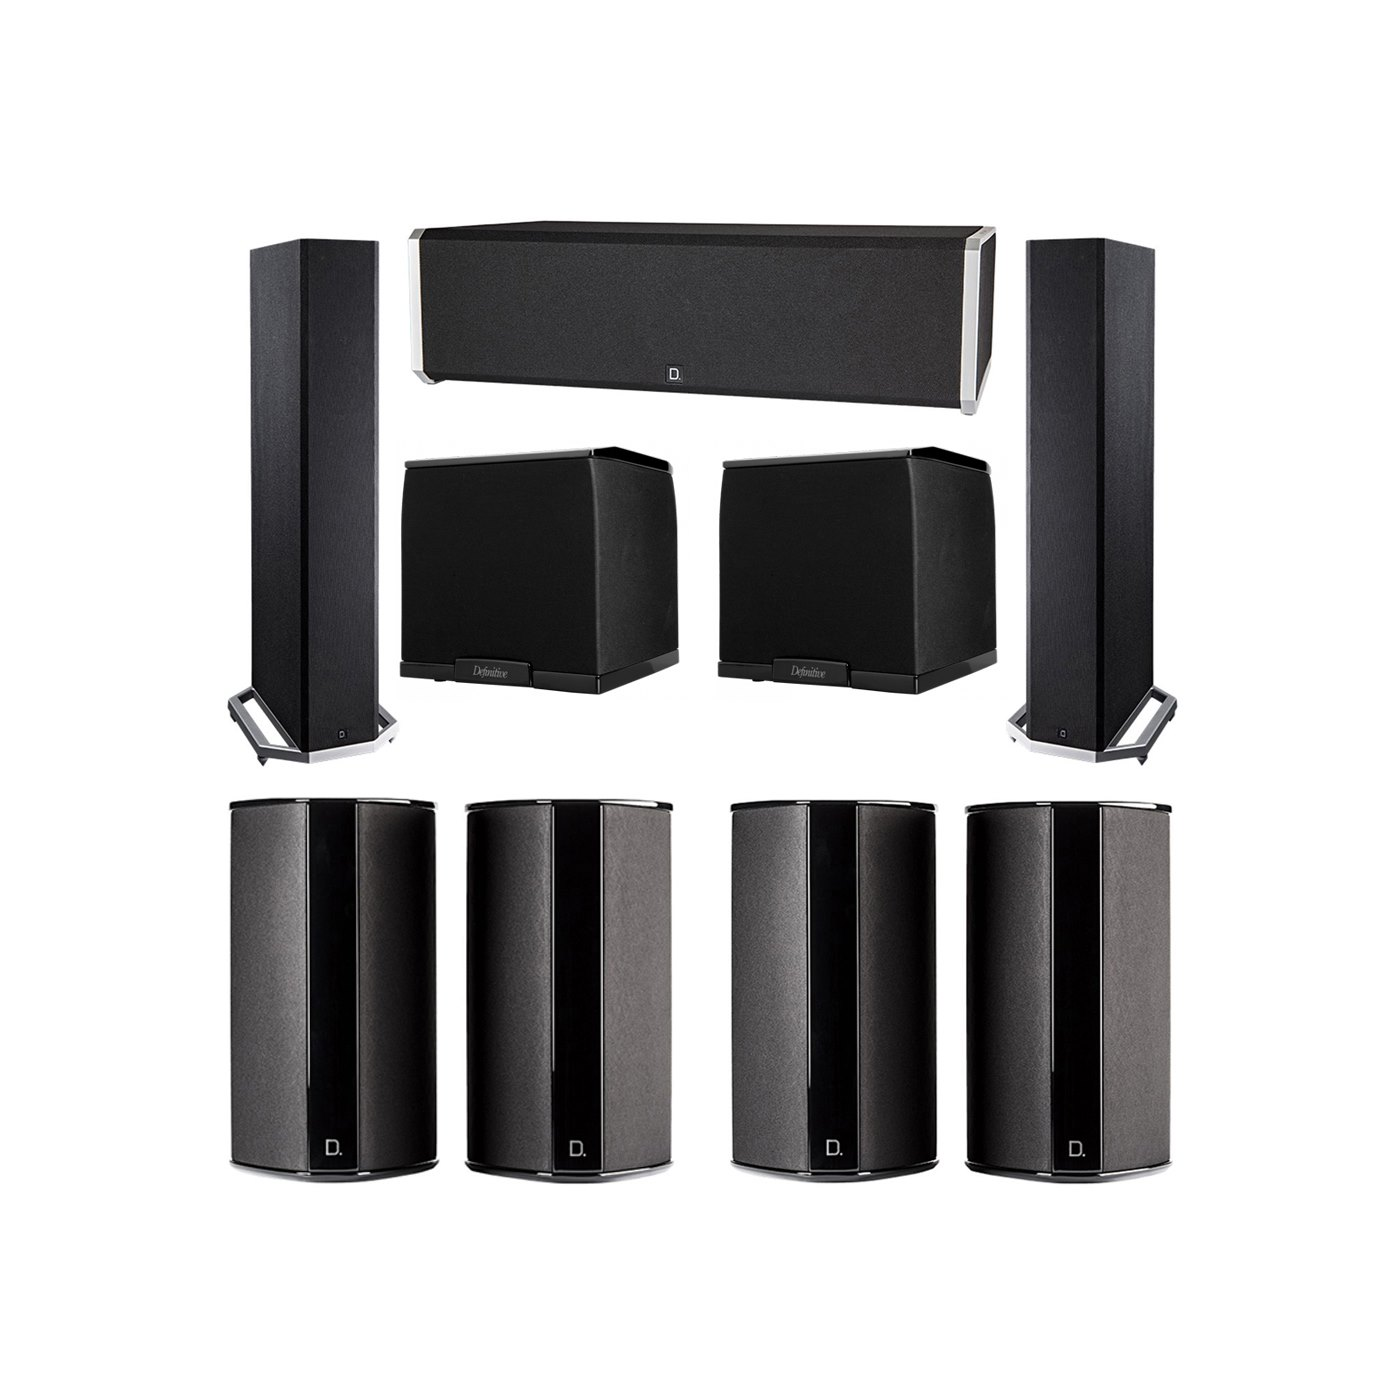 Definitive Technology 7.2 System with 2 BP9020 Tower Speakers, 1 CS9040 Center Channel Speaker, 4 SR9080 Surround Speaker, 2 Definitive Technology SuperCube 2000 Powered Subwoofer